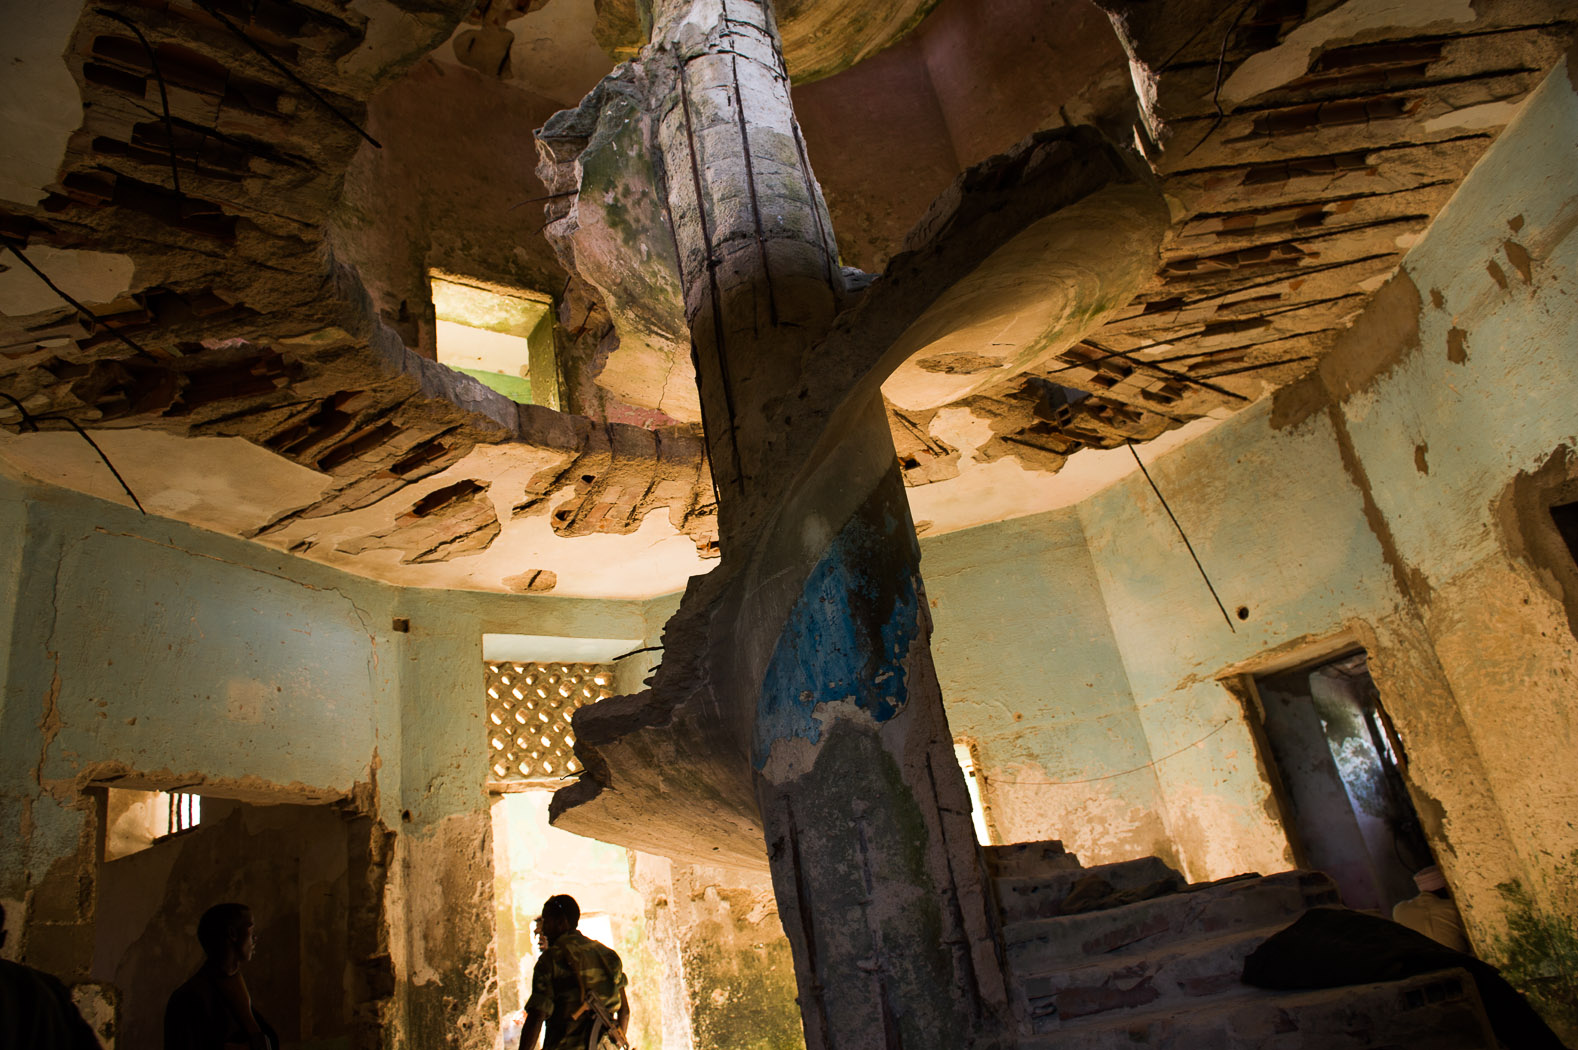 After two decades of conflict, the city has been ravaged by war. Shells and gunfire have gutted much of what was extravagant architecture and a lively city.